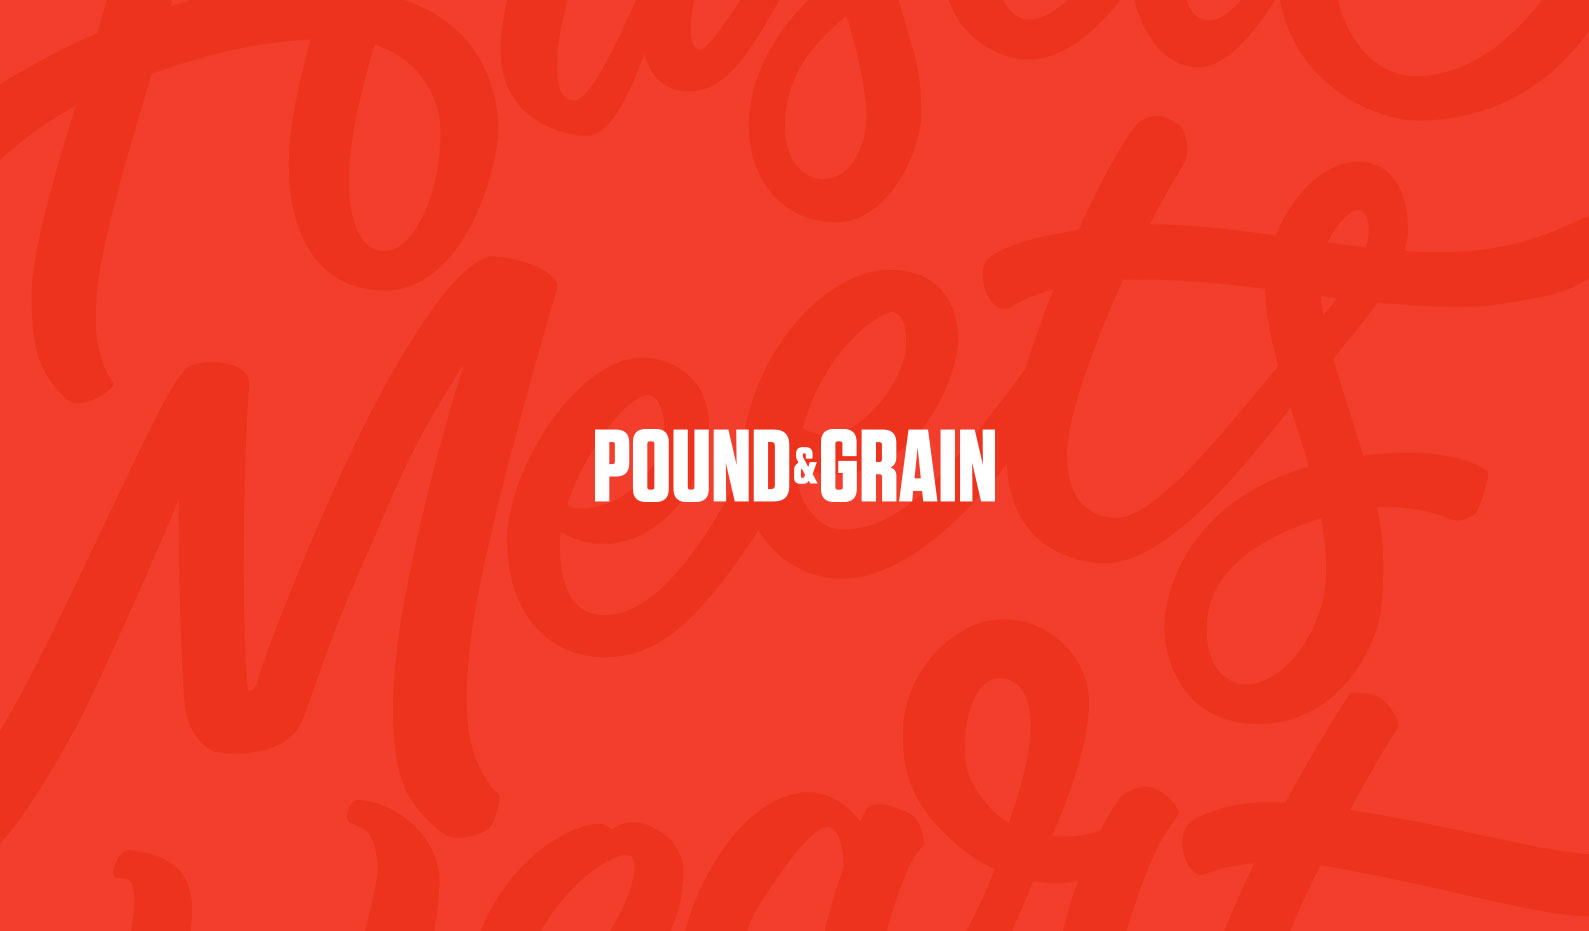 Pound & Grain Website